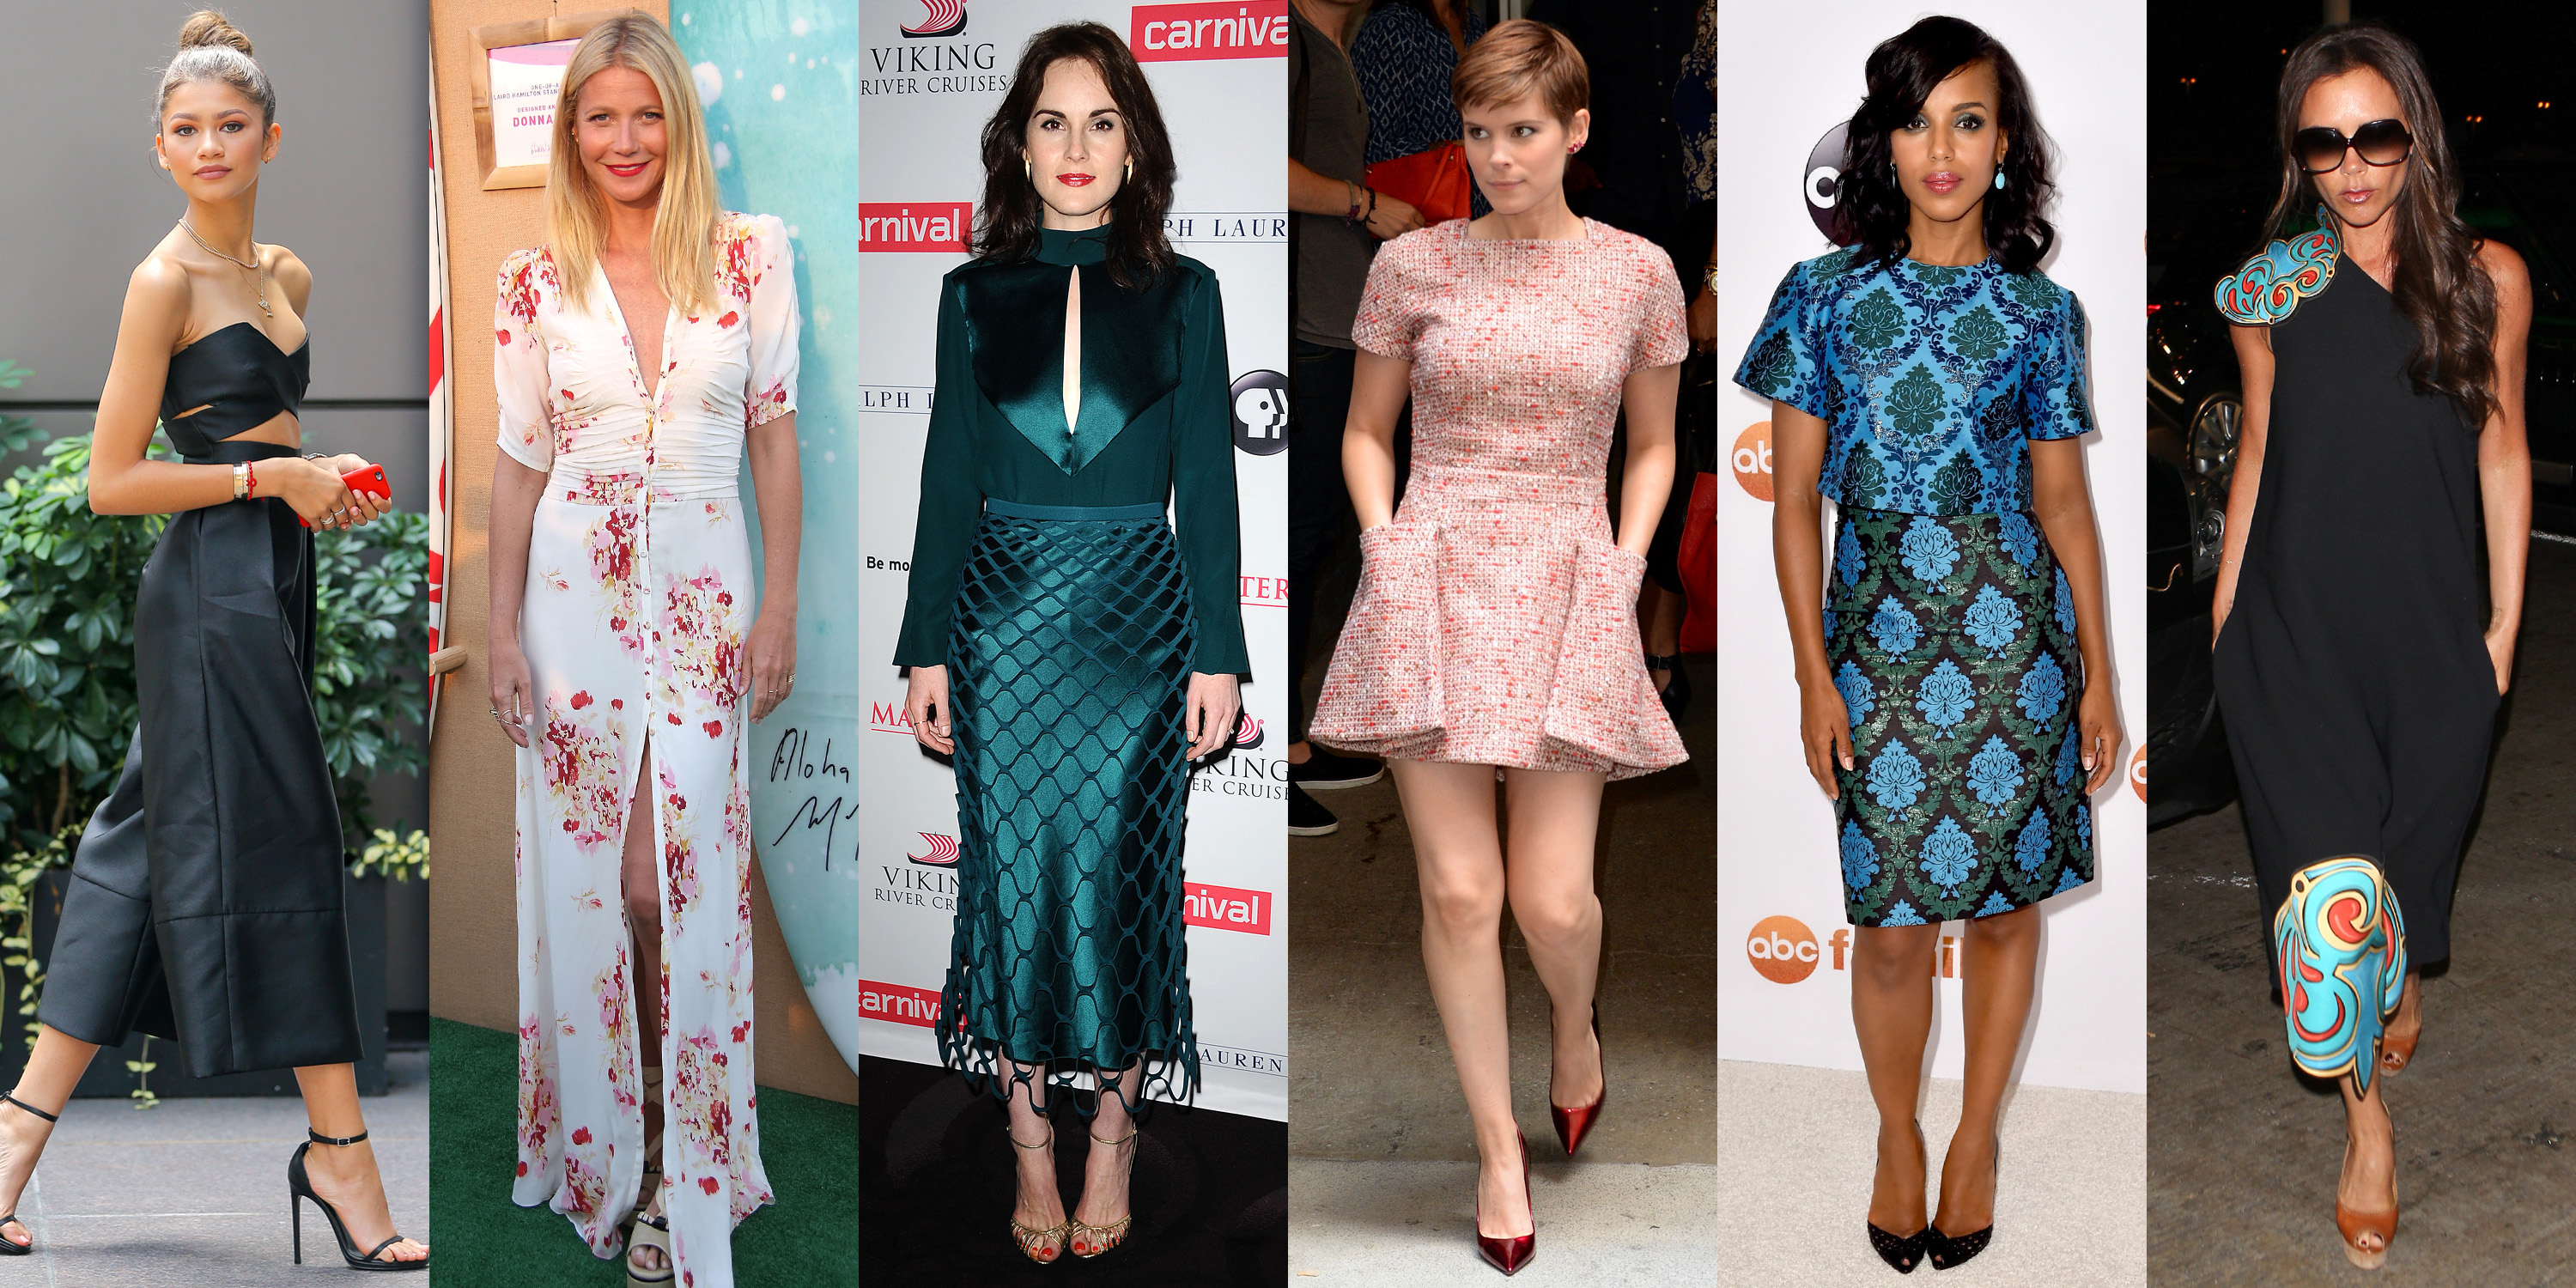 Best Celebrity Fashion, Dresses & Model Style in 2018